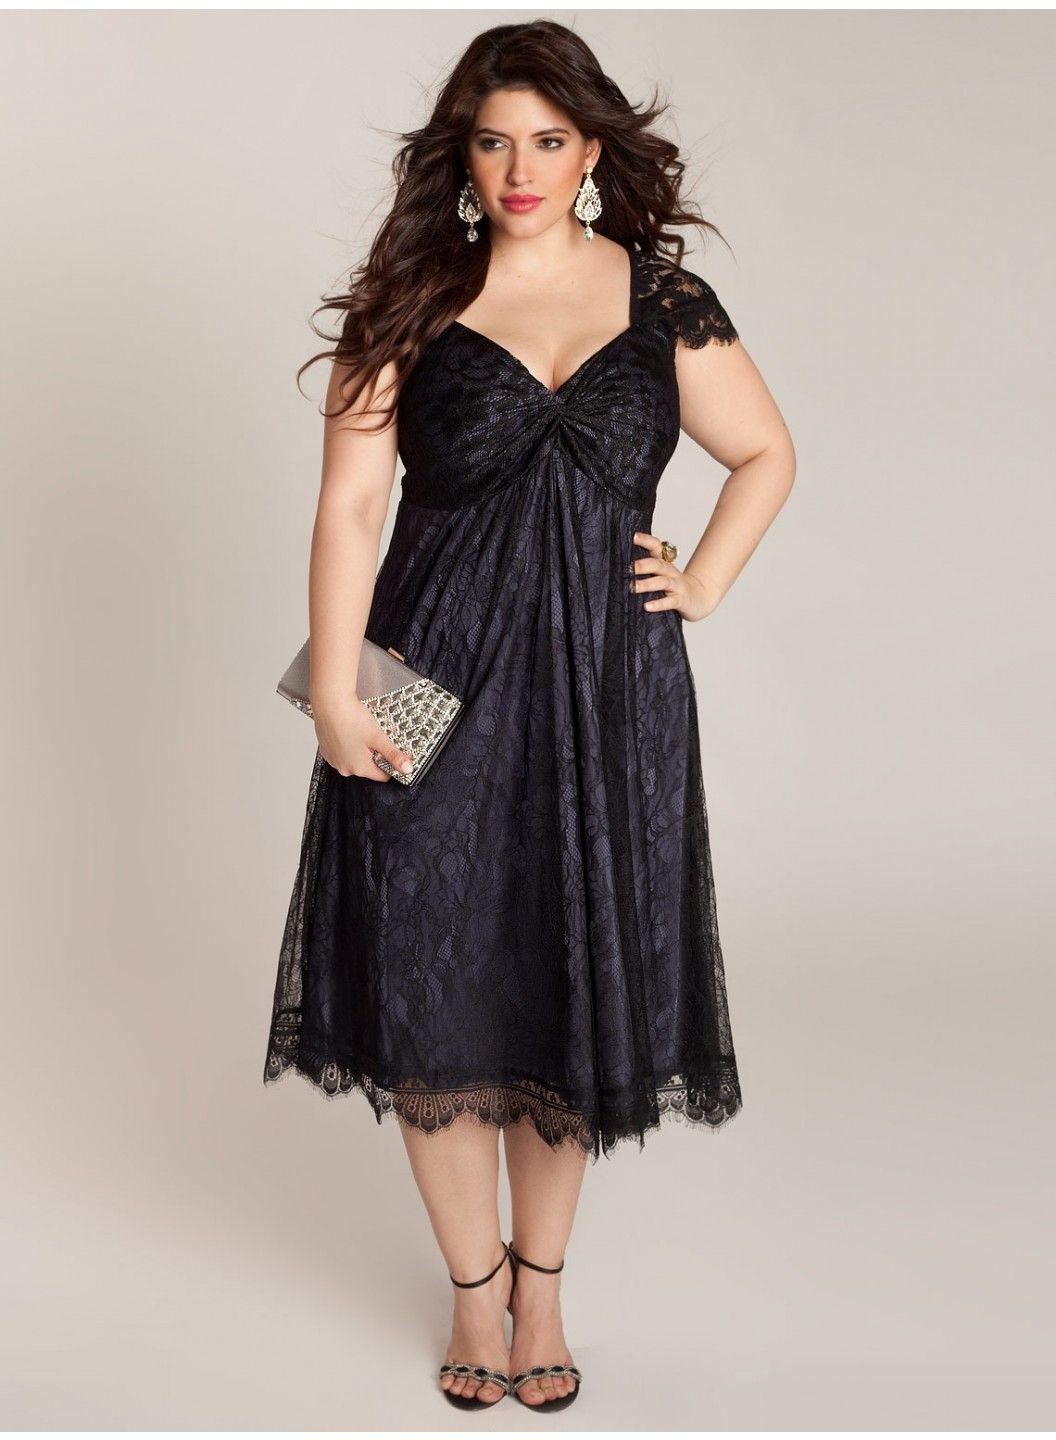 20 Plus Size Evening Dresses to Look Like Queen | Best Lace dress ...